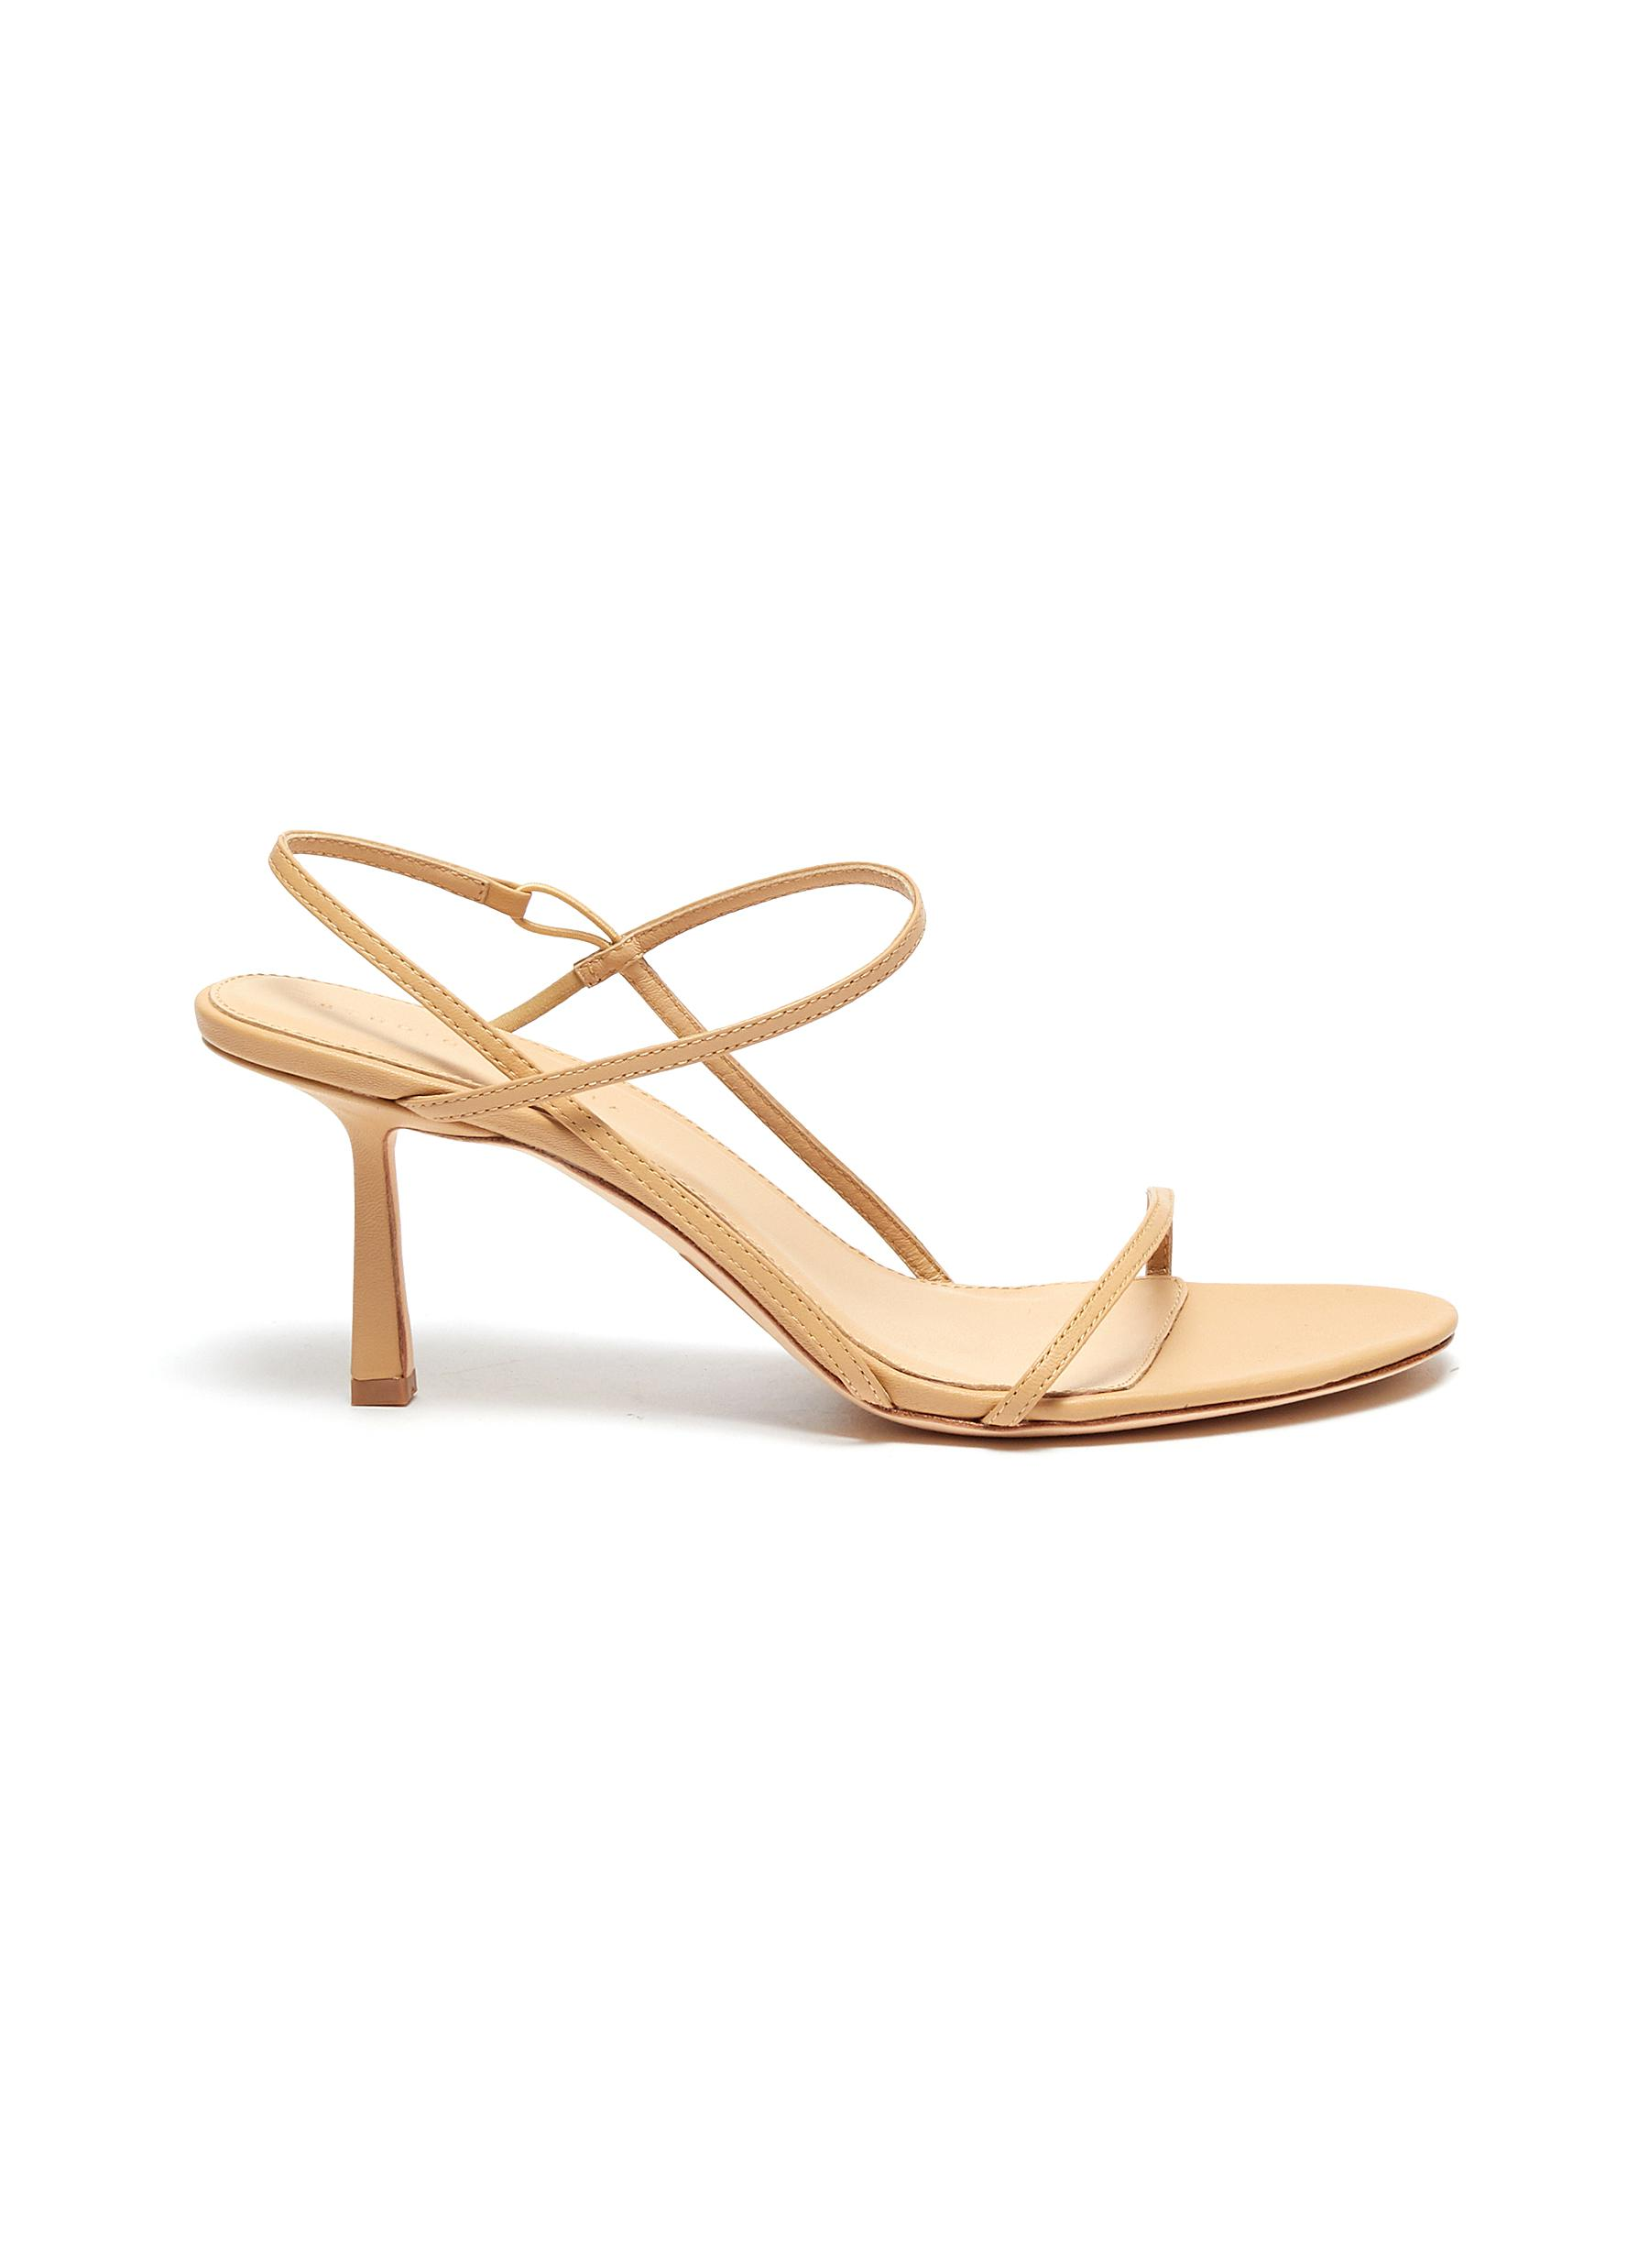 Studio Amelia Mid Heels 2.3 strappy leather sandals